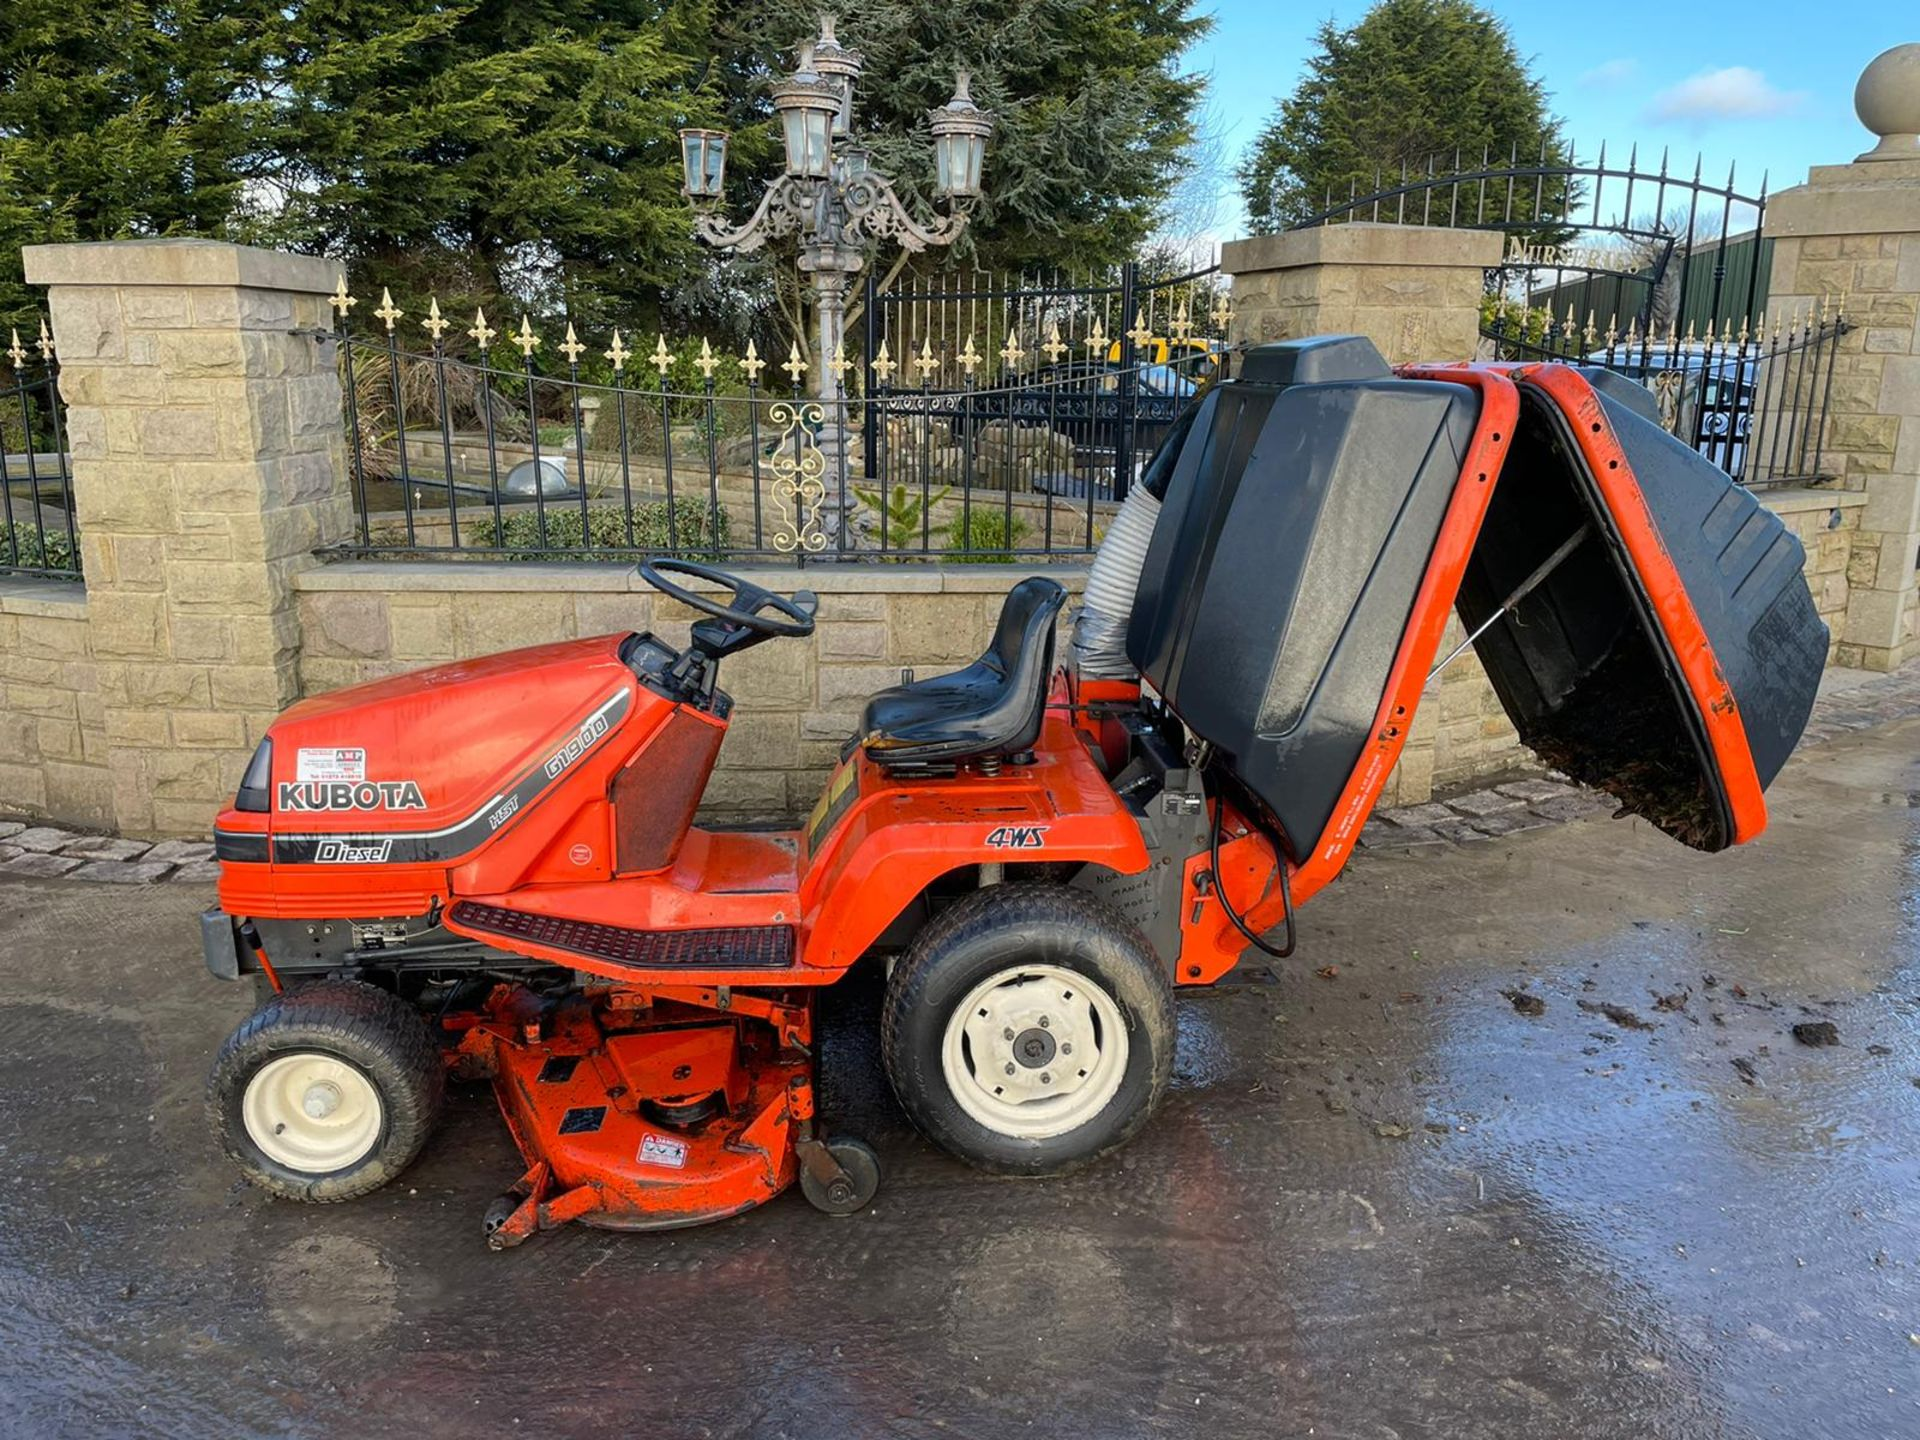 KUBOTA G1900 HST 4WS RIDE ON MOWER WITH COLLECTOR, RUNS, DRIVES AND CUTS, DIESEL ENGINE *NO VAT* - Image 4 of 7